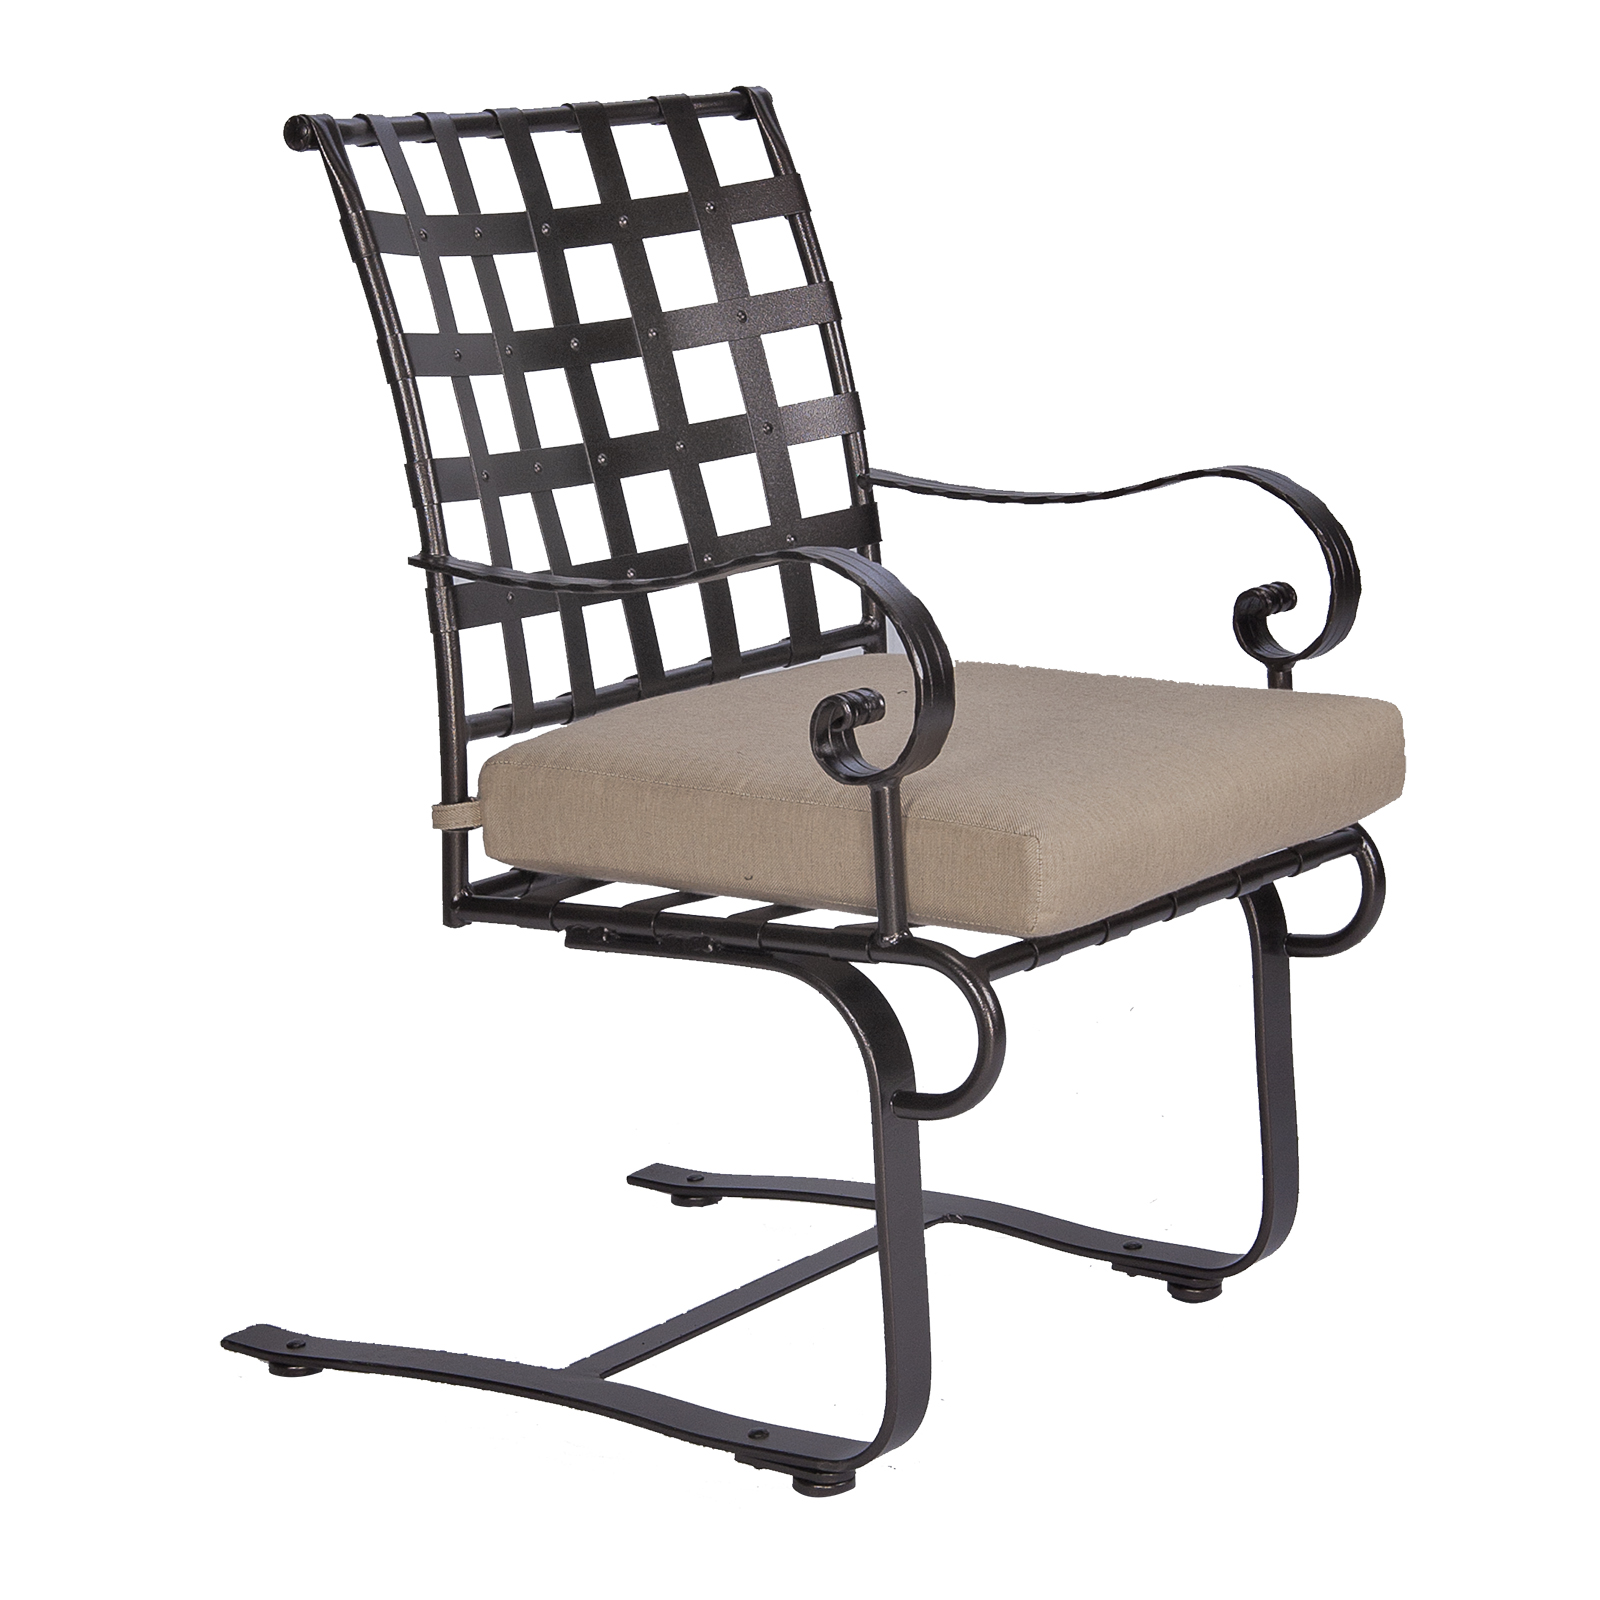 Spring-Base-Dining-Arm-Chair-953-SBW_Catalog_GR35_1600-Classico-W-OW-Lee